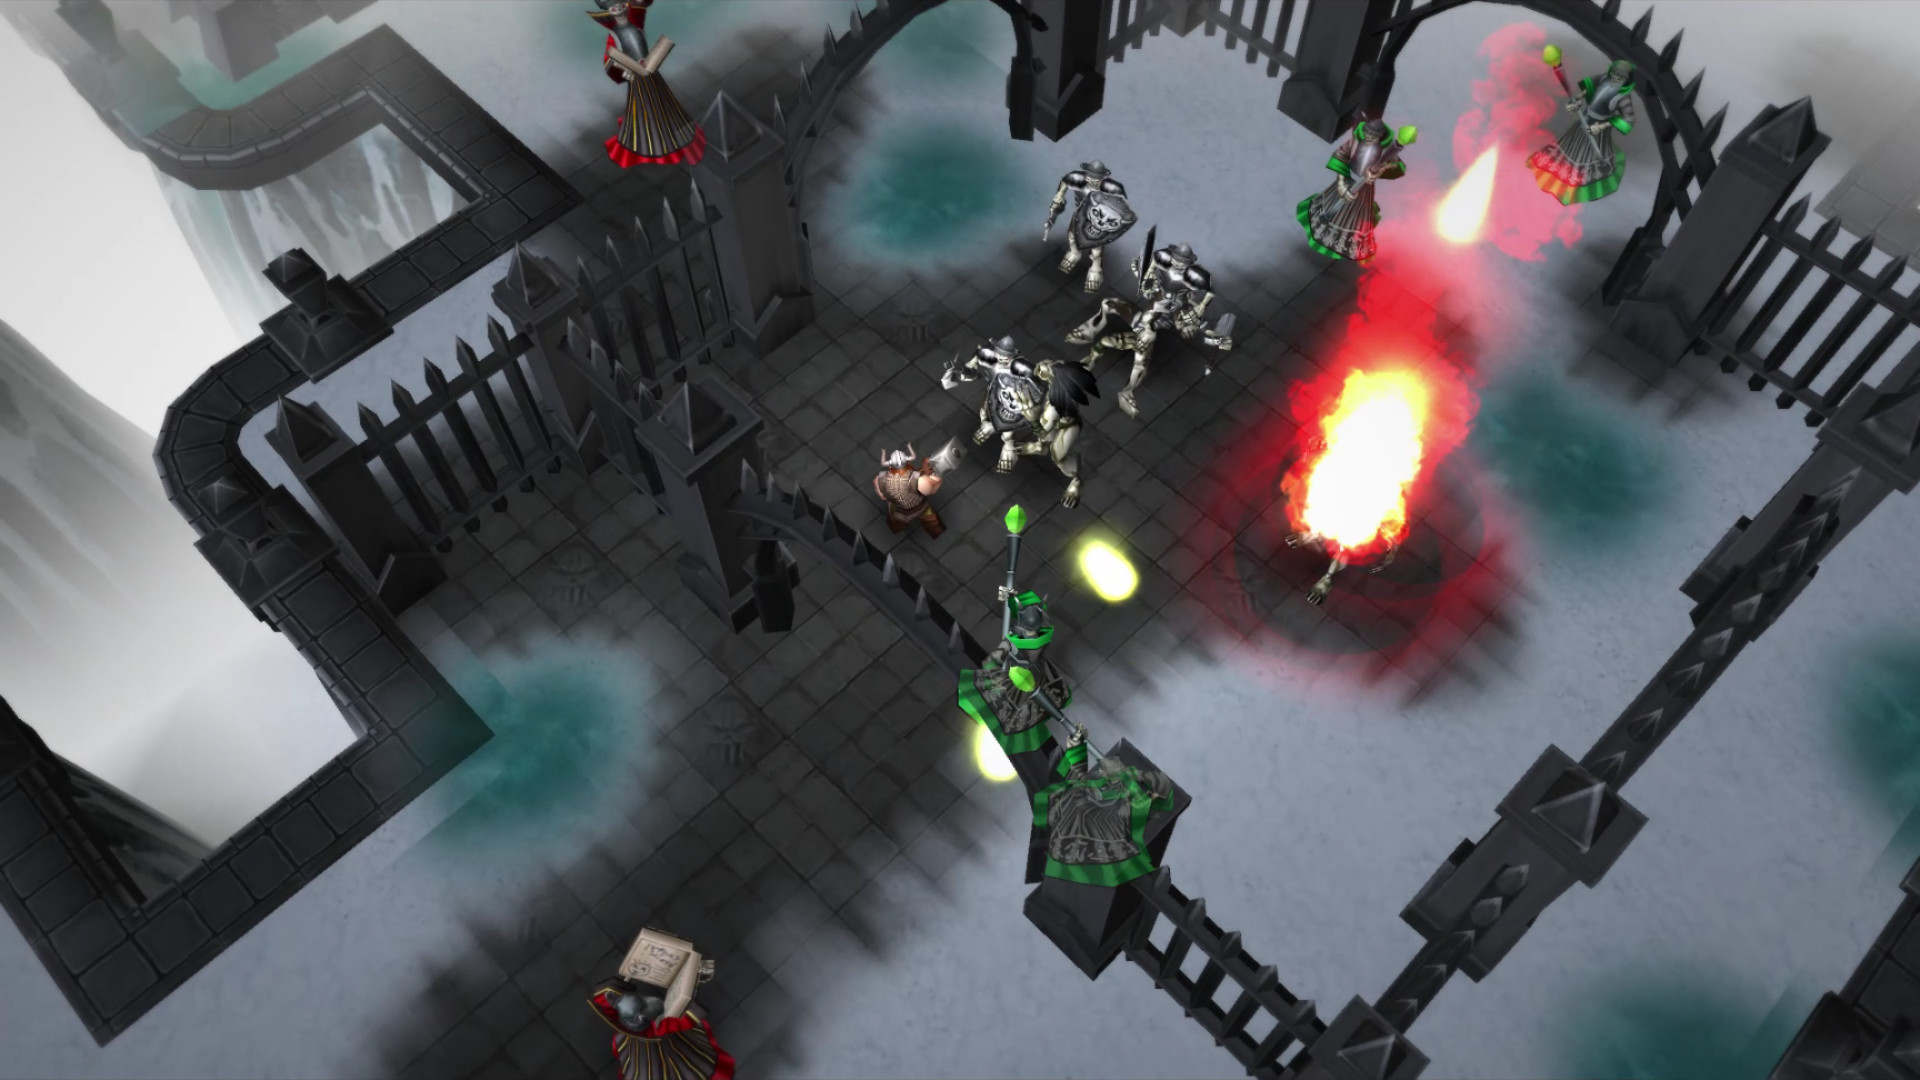 [Update] The gory dwarven hack 'n slash, Runic Rampage, drops on iOS a day early